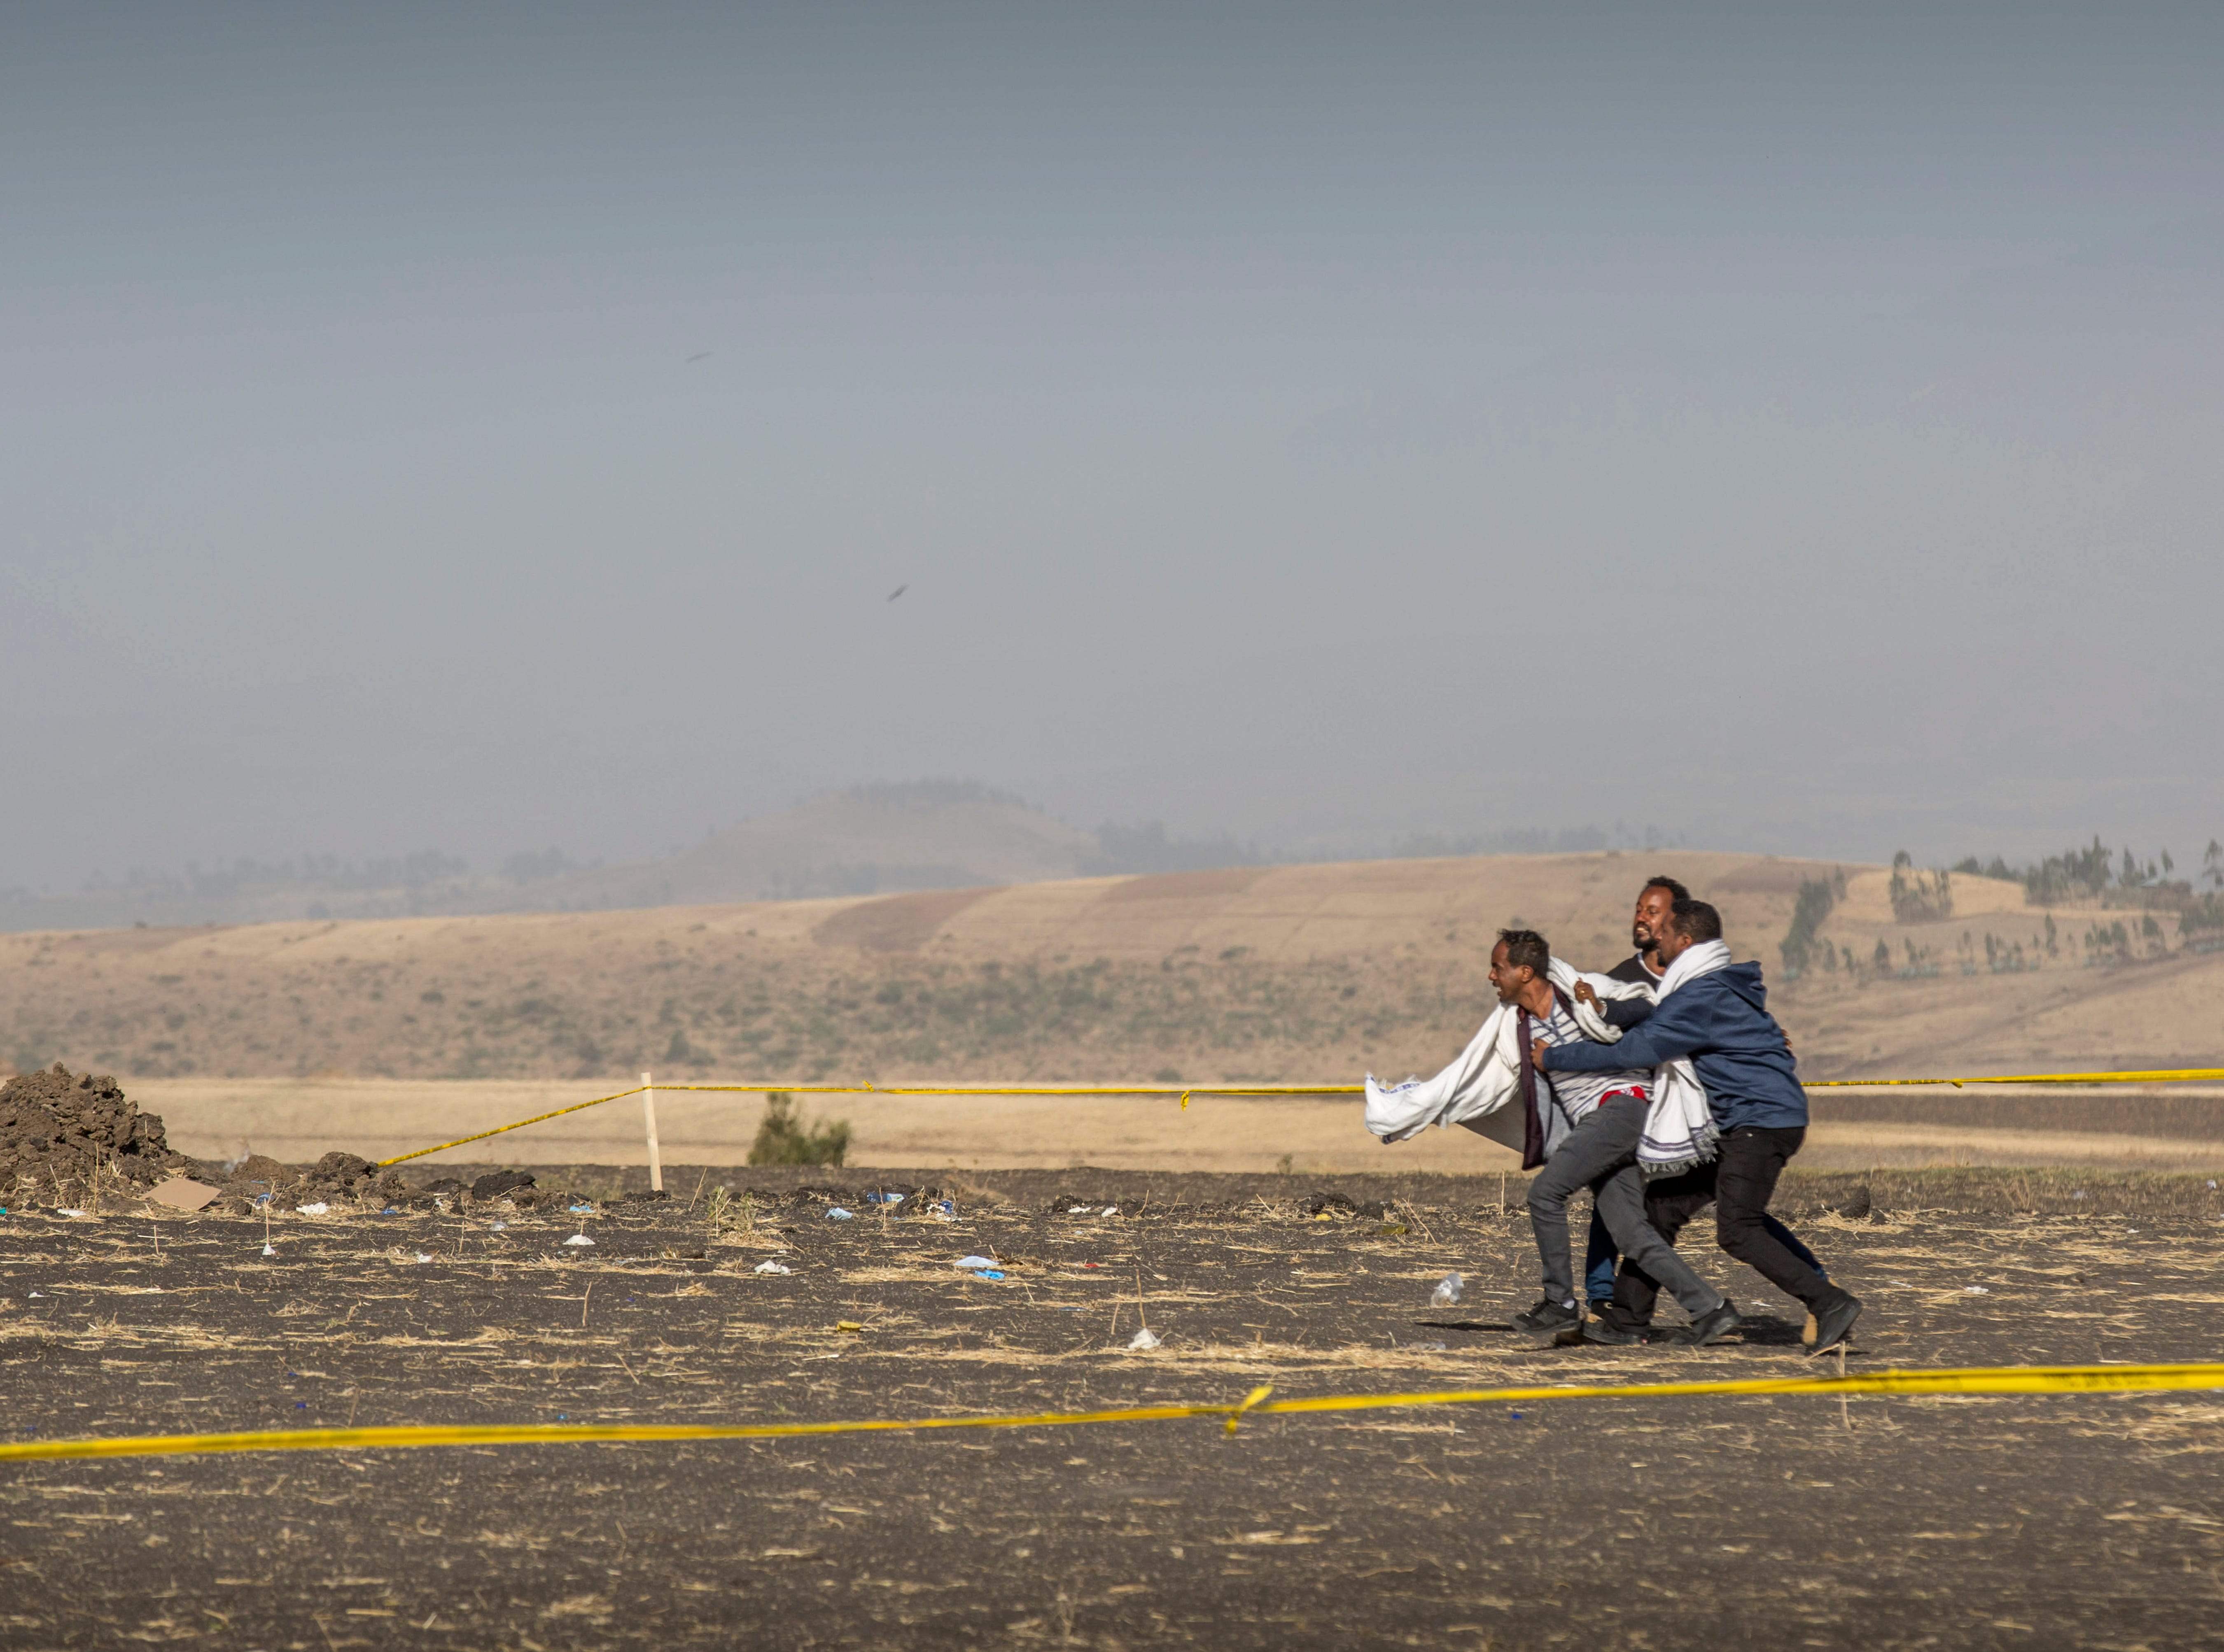 A grieving relative is held back by others at the scene where the Ethiopian Airlines Boeing 737 Max 8 crashed shortly after takeoff on Sunday killing all 157 on board, near Bishoftu, or Debre Zeit, south of Addis Ababa, in Ethiopia Wednesday, March 13, 2019.